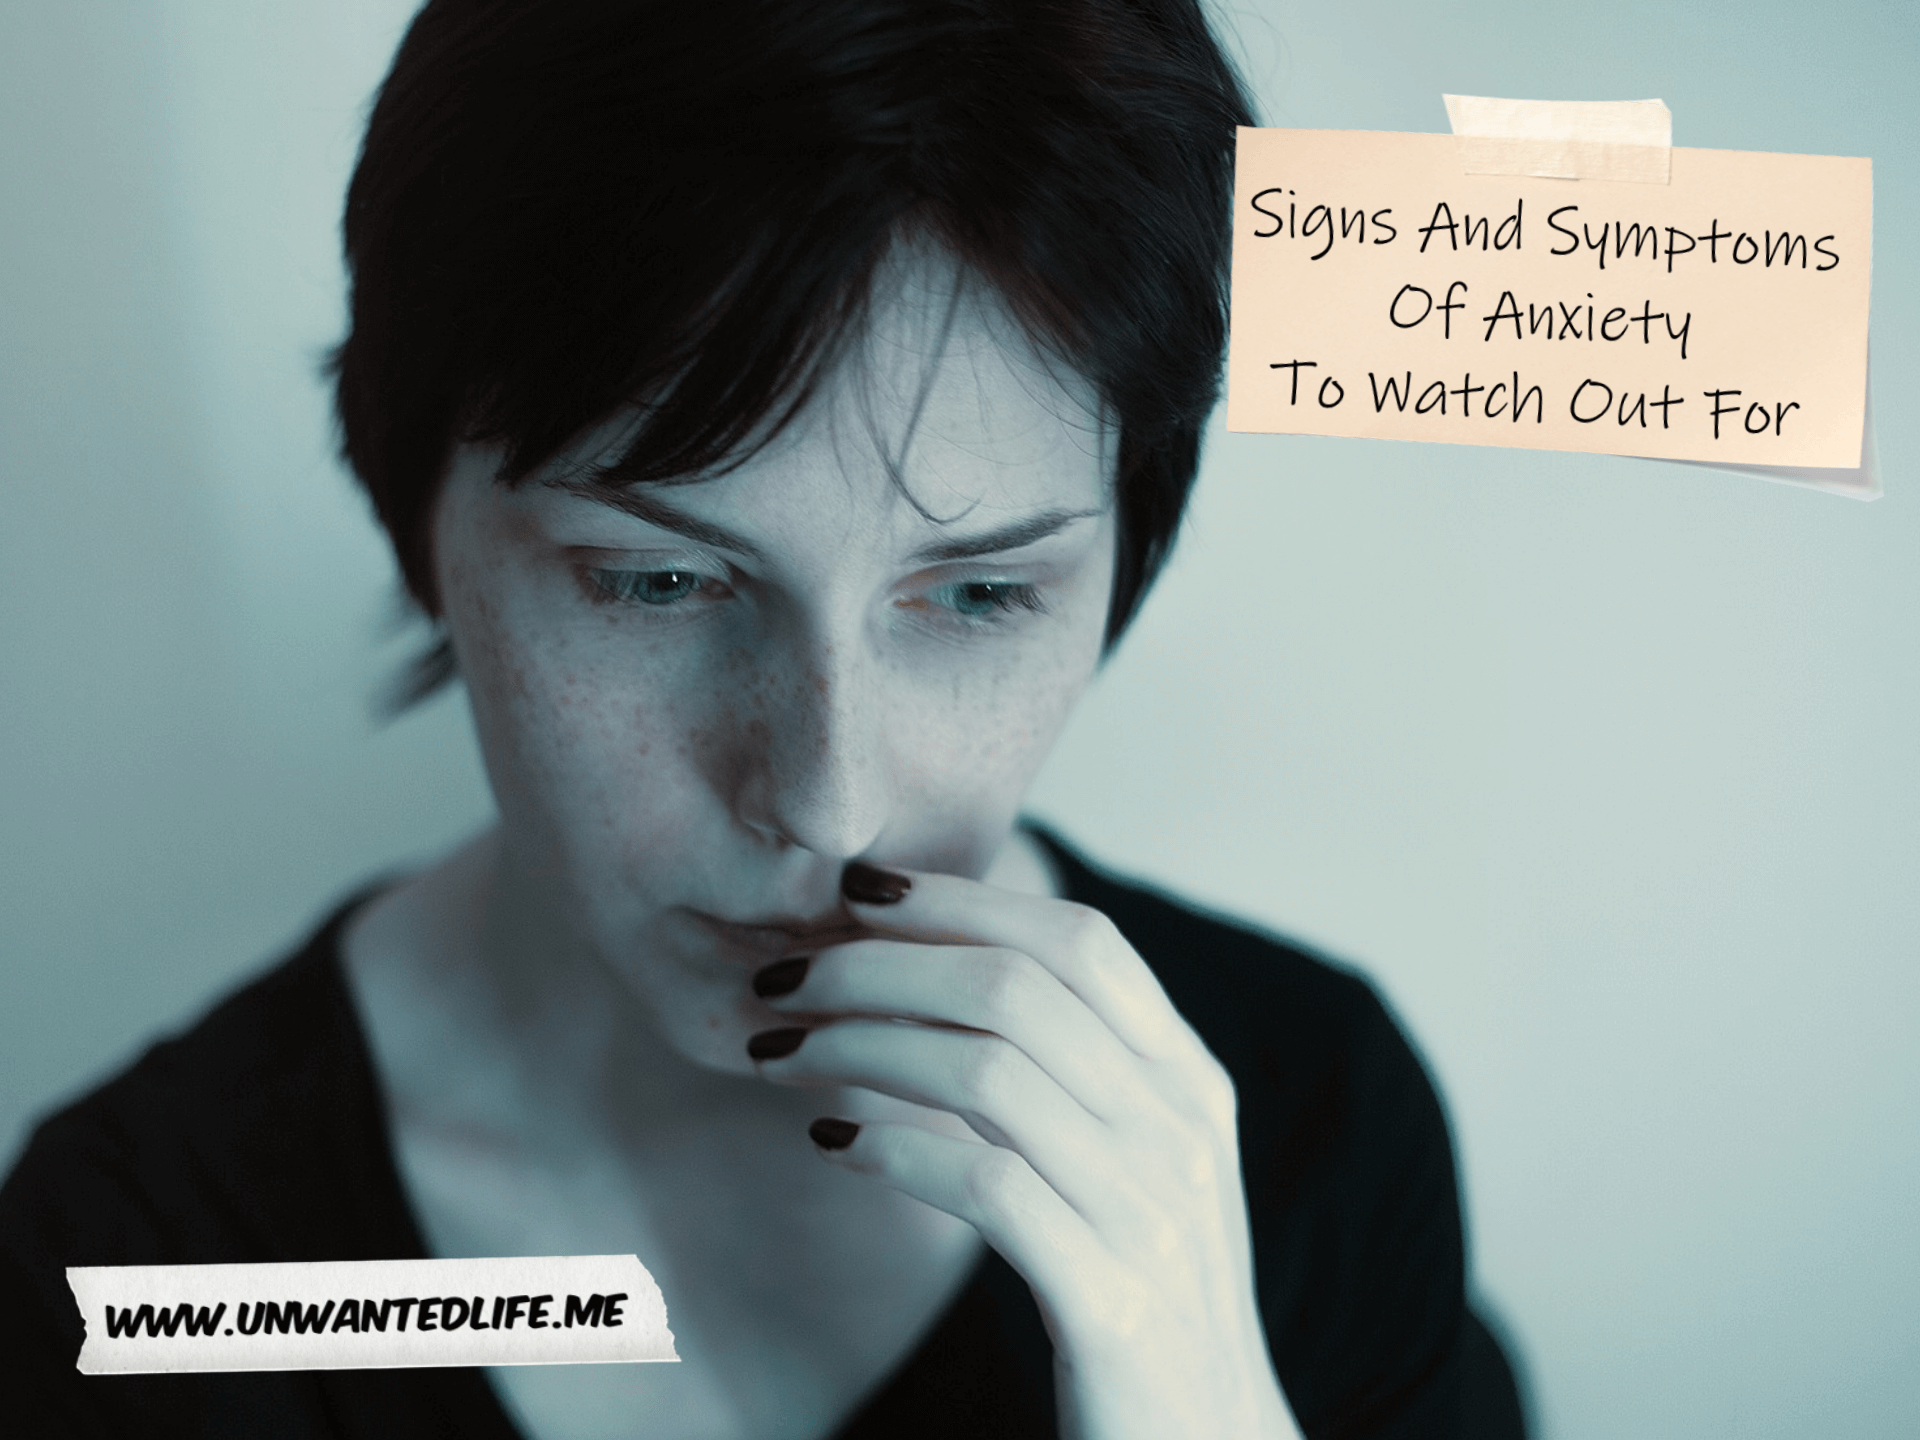 Signs And Symptoms Of Anxiety To Watch Out For | Mental Health and Wellbeing | Unwanted Life